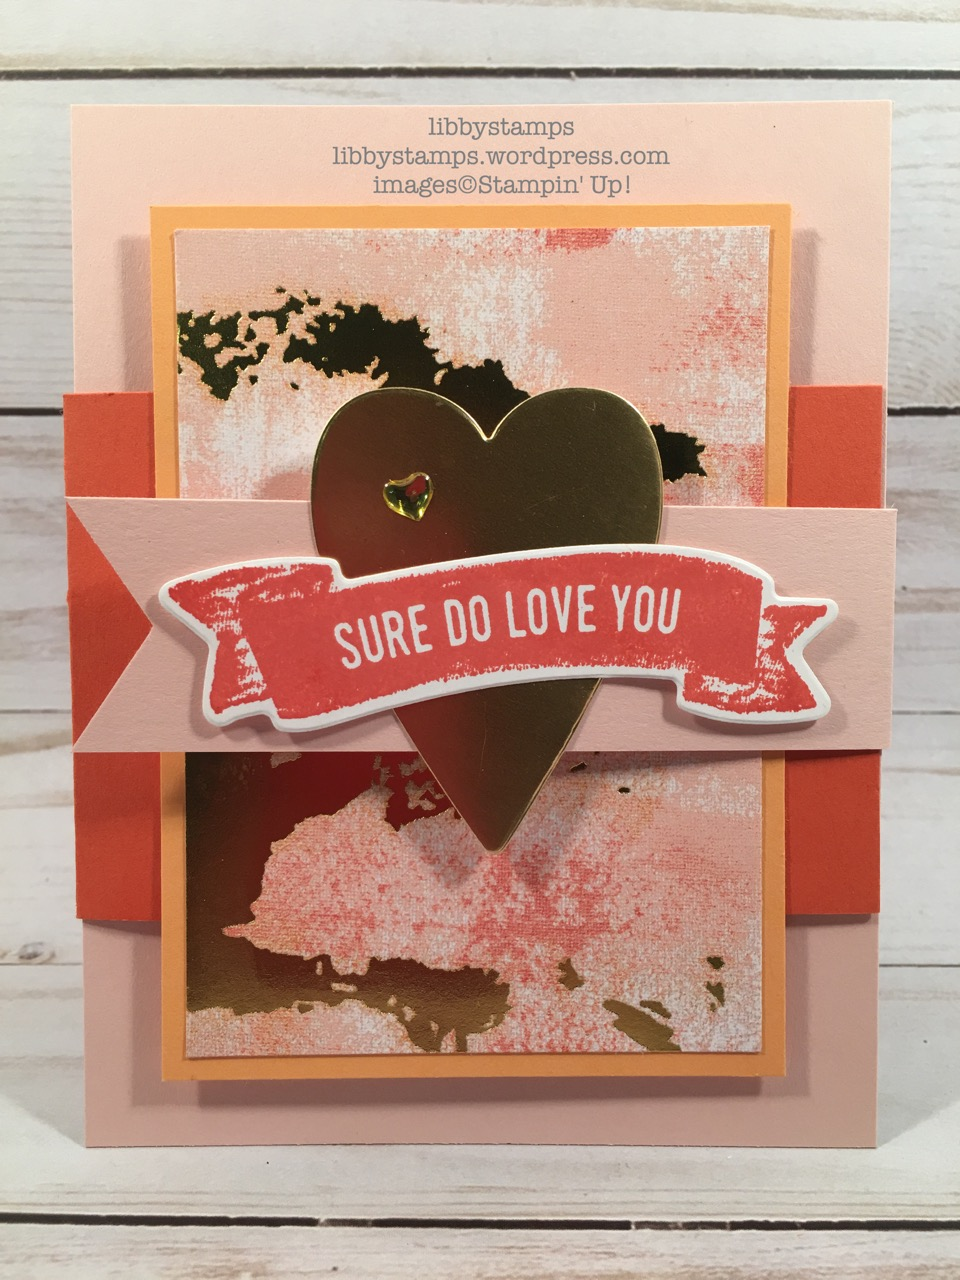 libbystamps, stampin up, Sure Do Love You, Sure Do Love You Bundle, Lots to Love Box Framelits, Painted With Love, CCMC